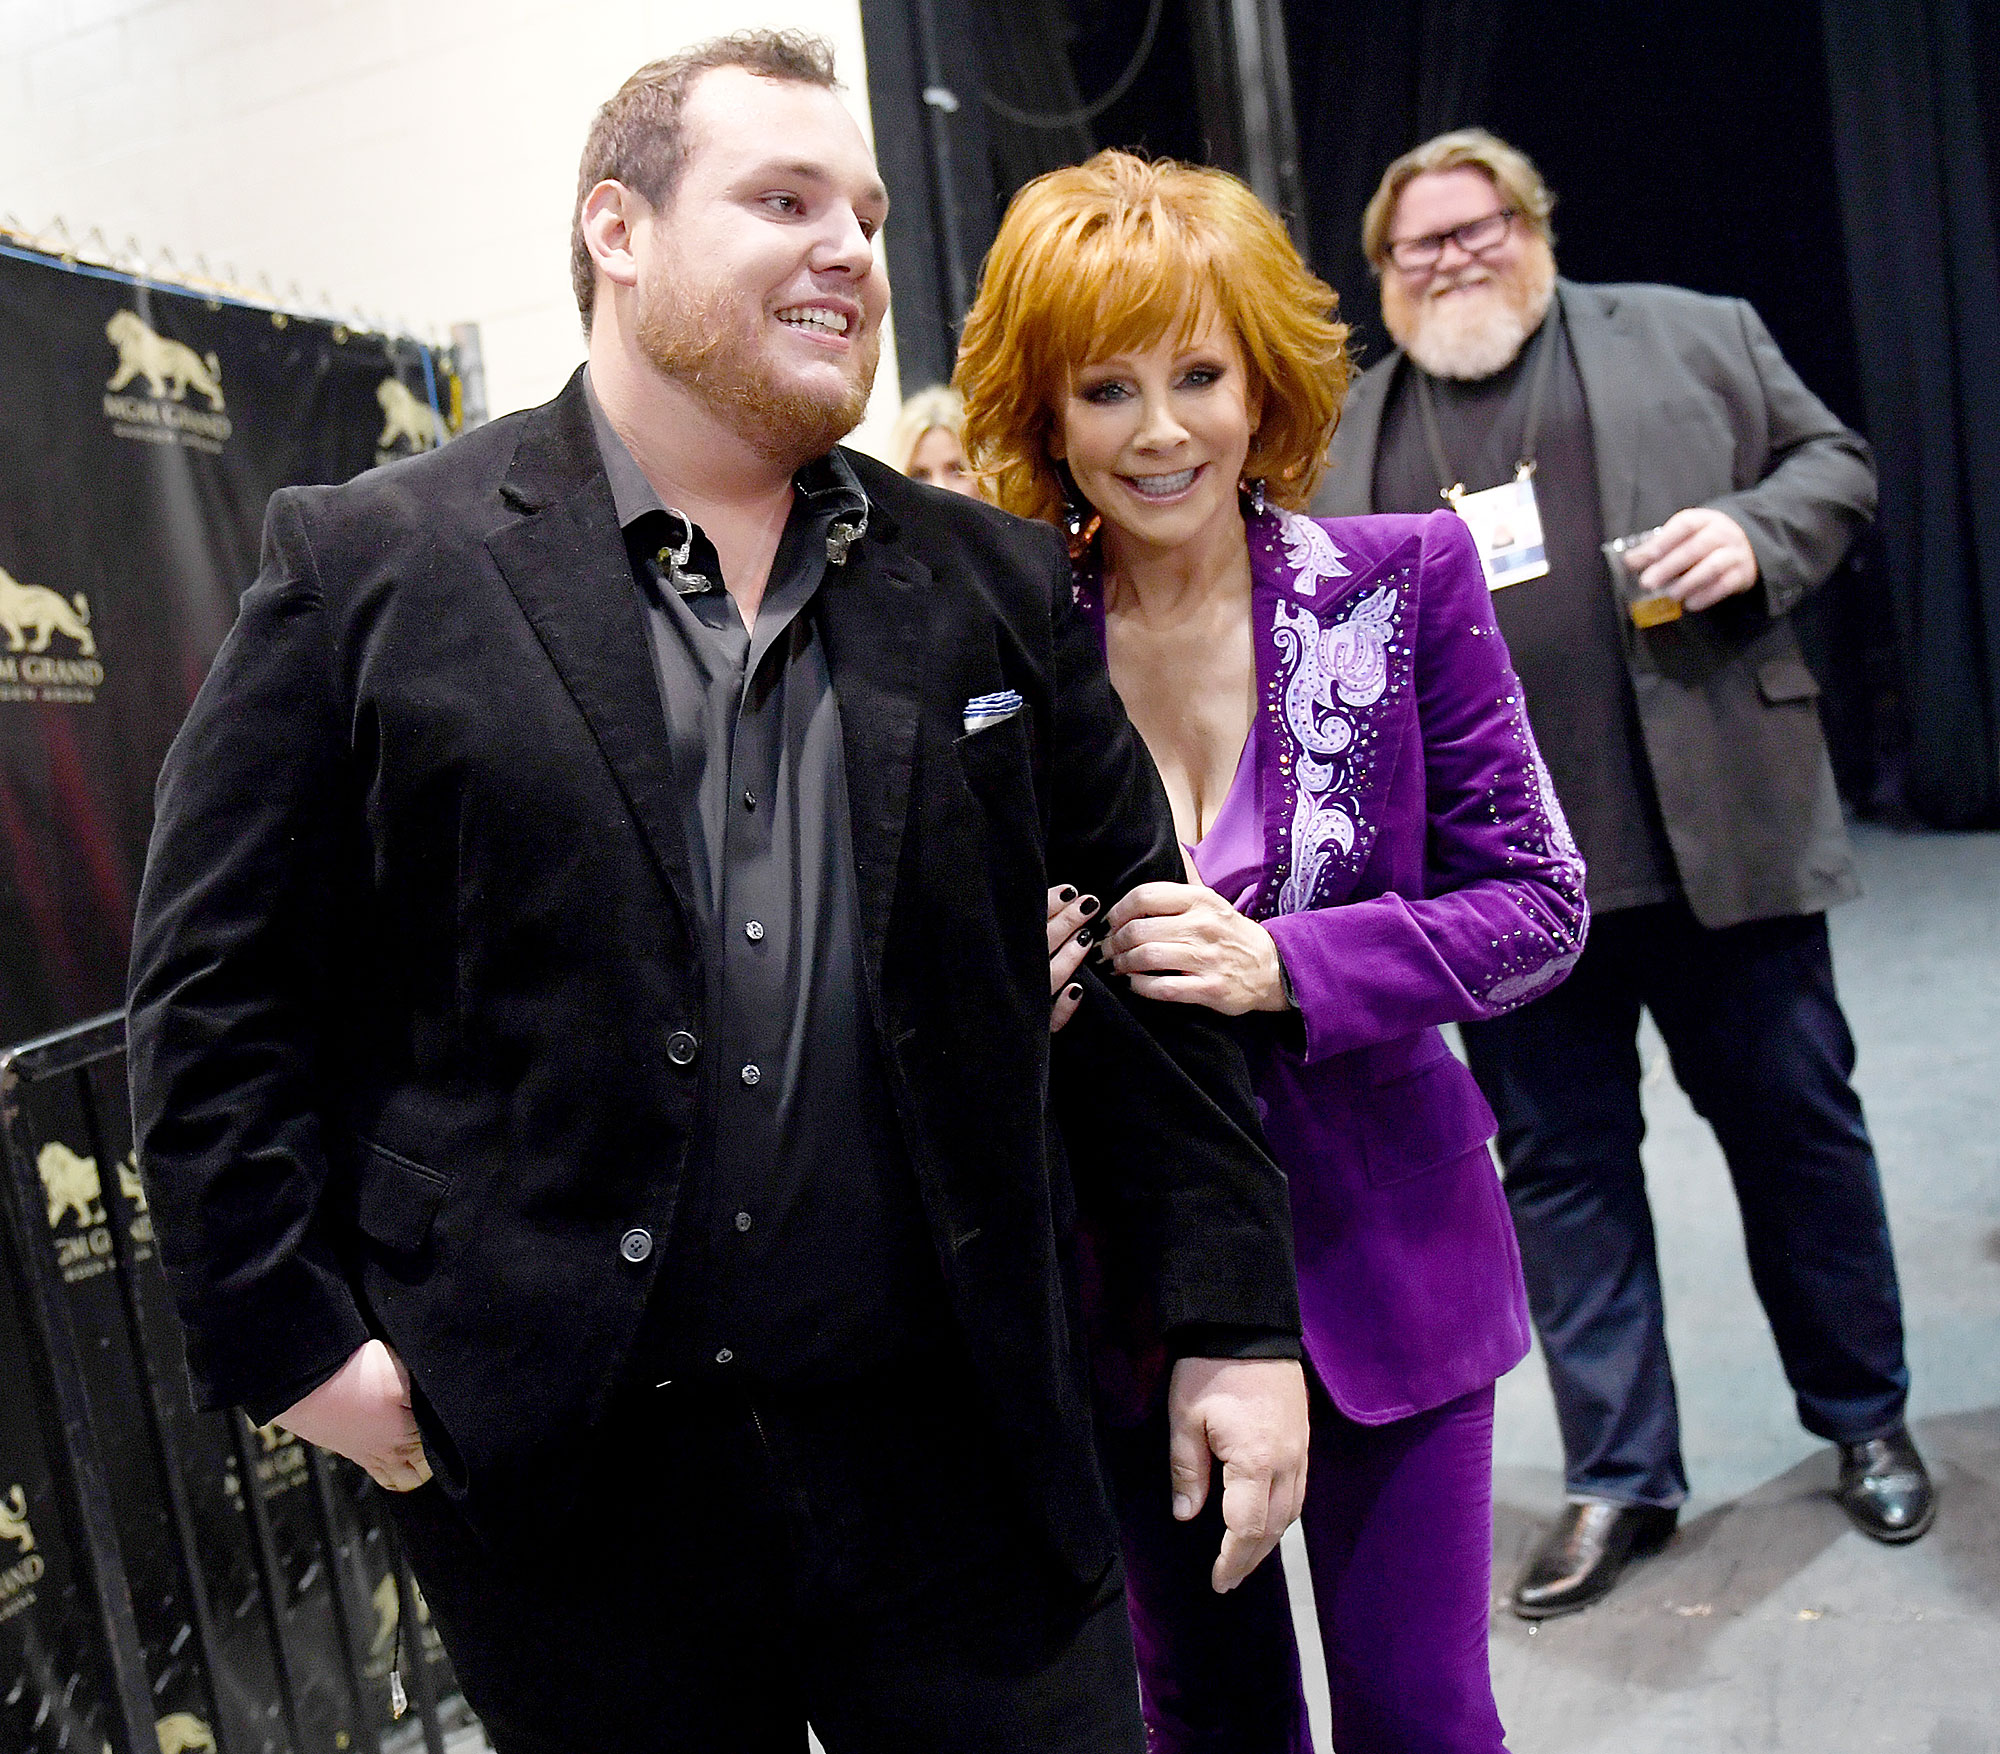 Inside ACM Awards 2019 Luke Combs Reba McEntire - Host Reba McEntire took a picture with Luke Combs .